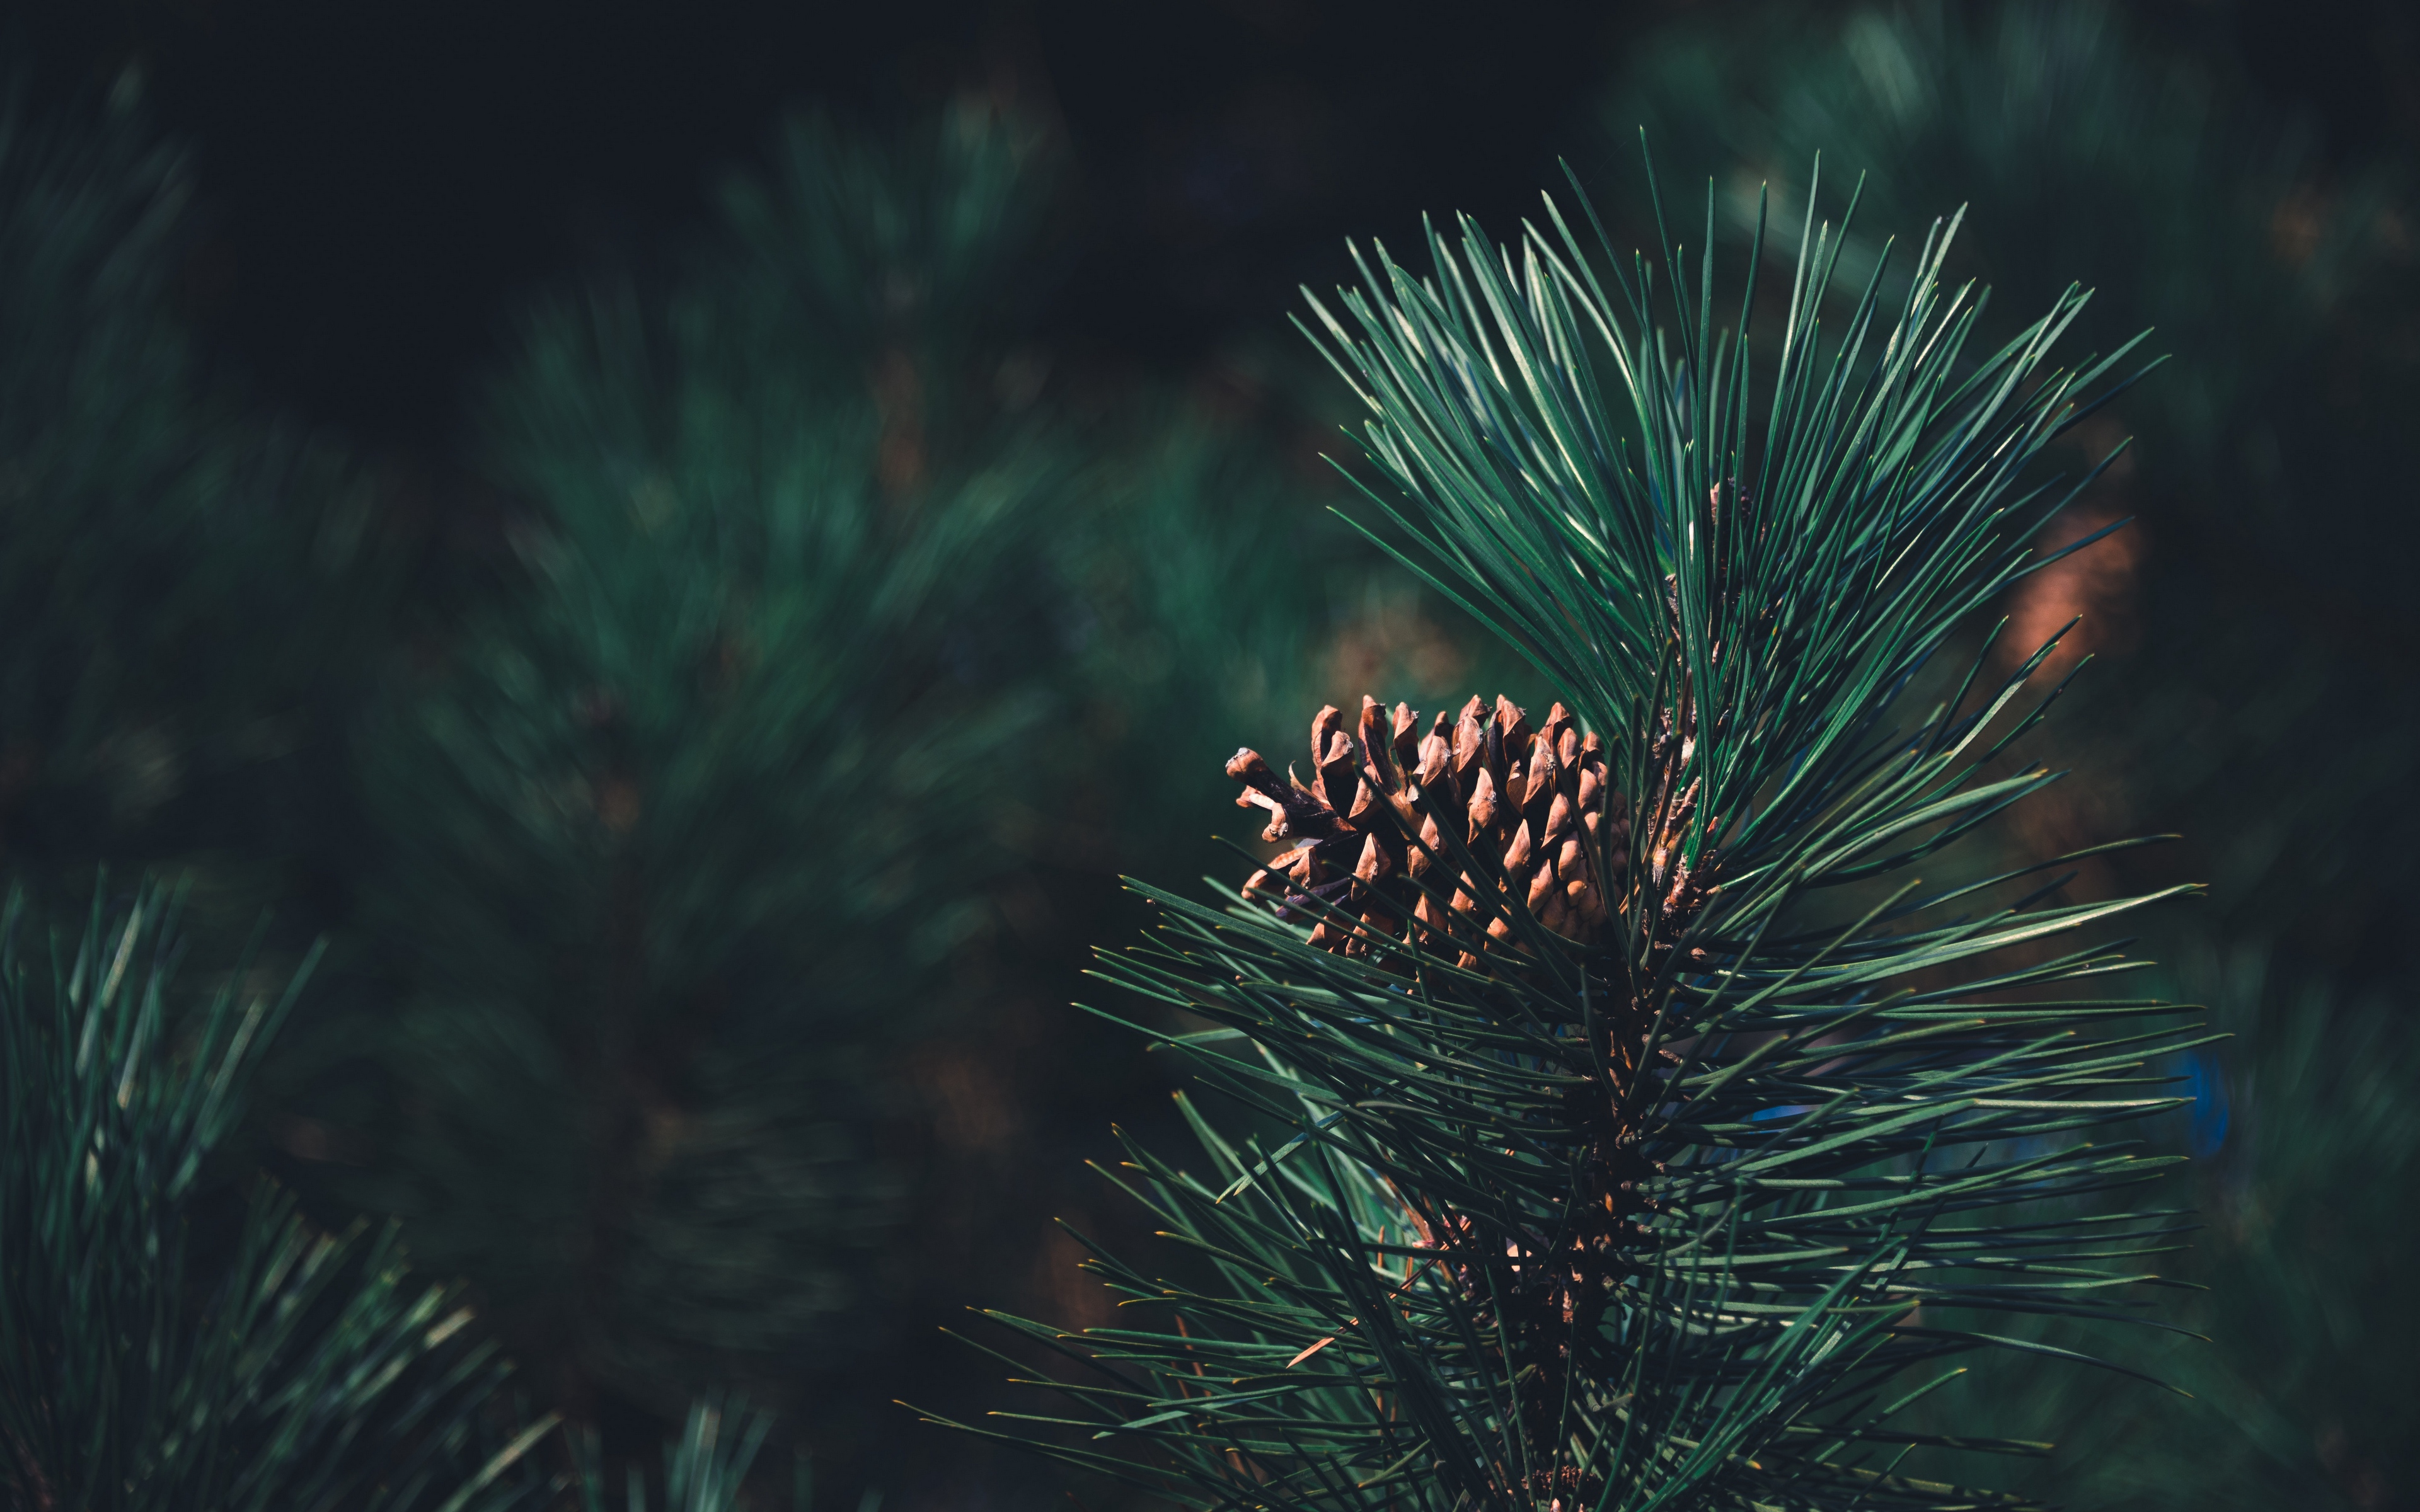 pine trees green photography nature plants pine cones